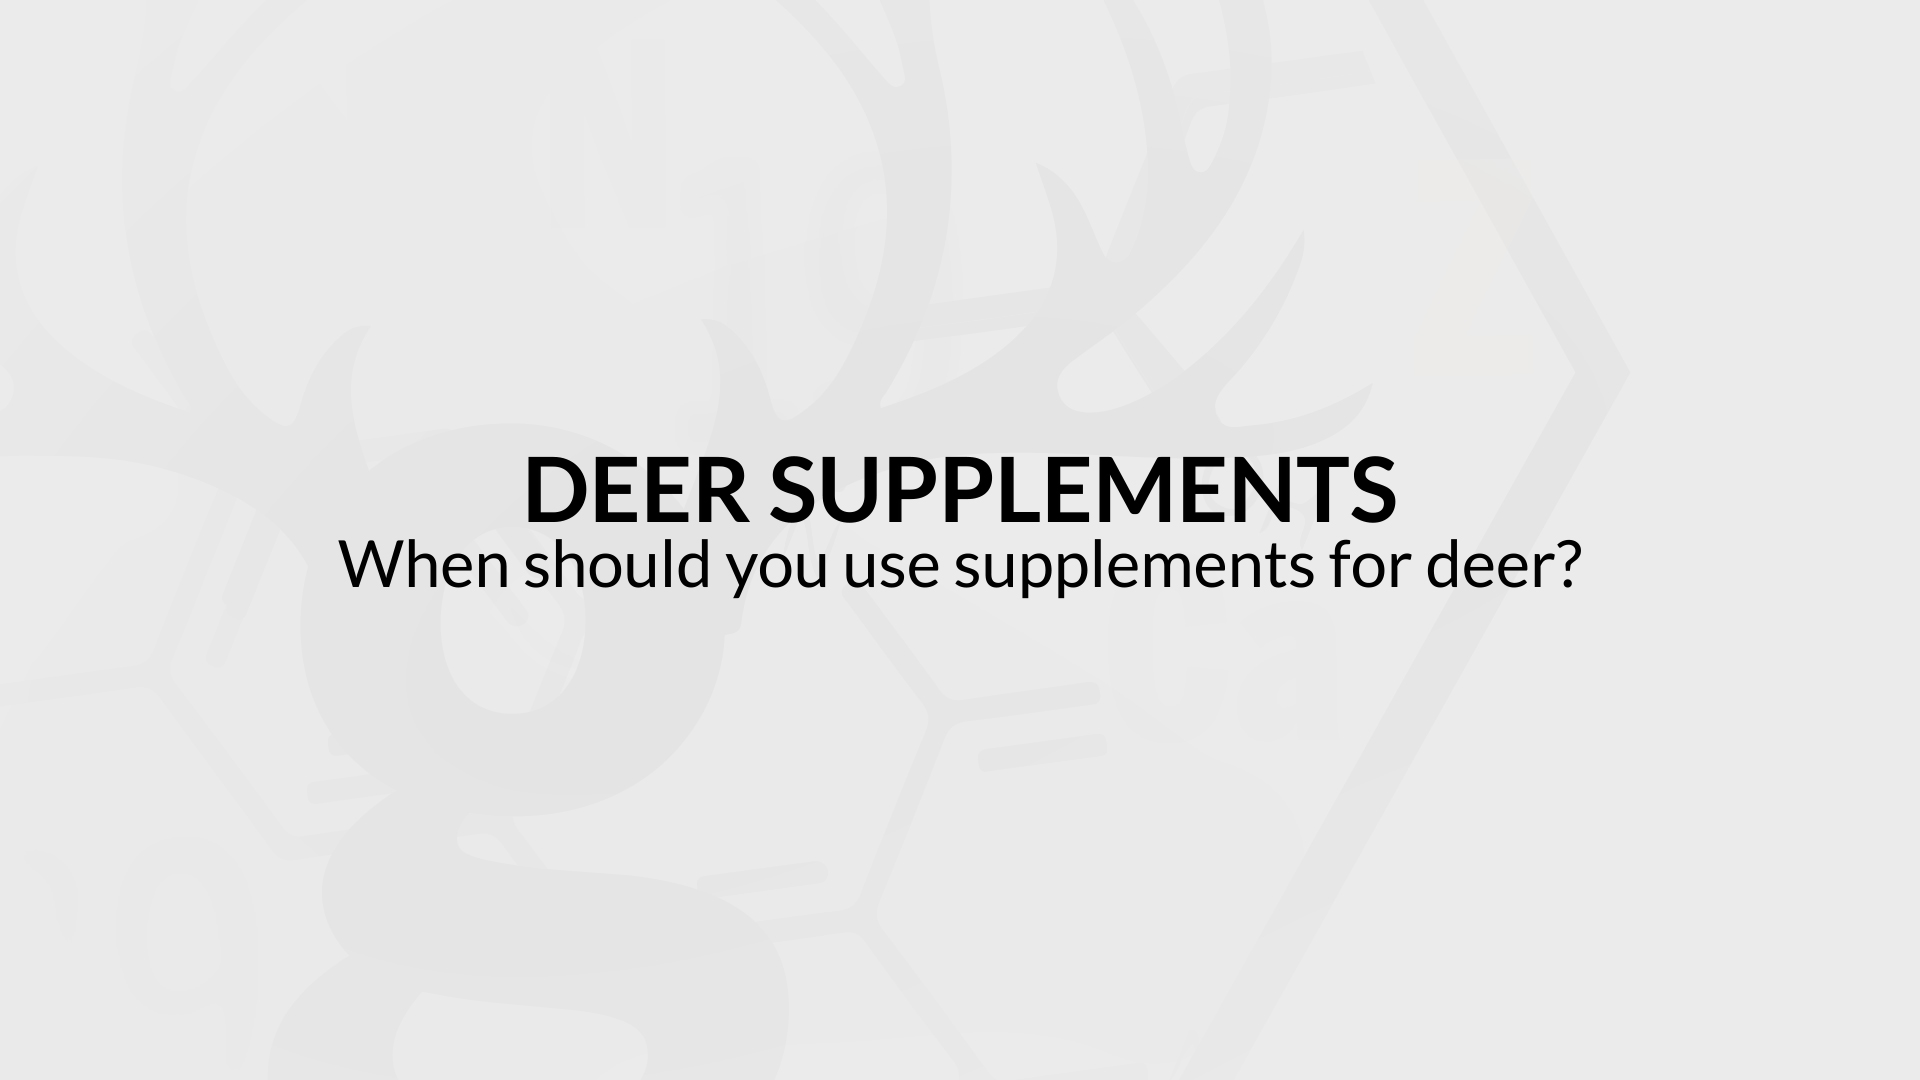 When should you use supplements for deer?